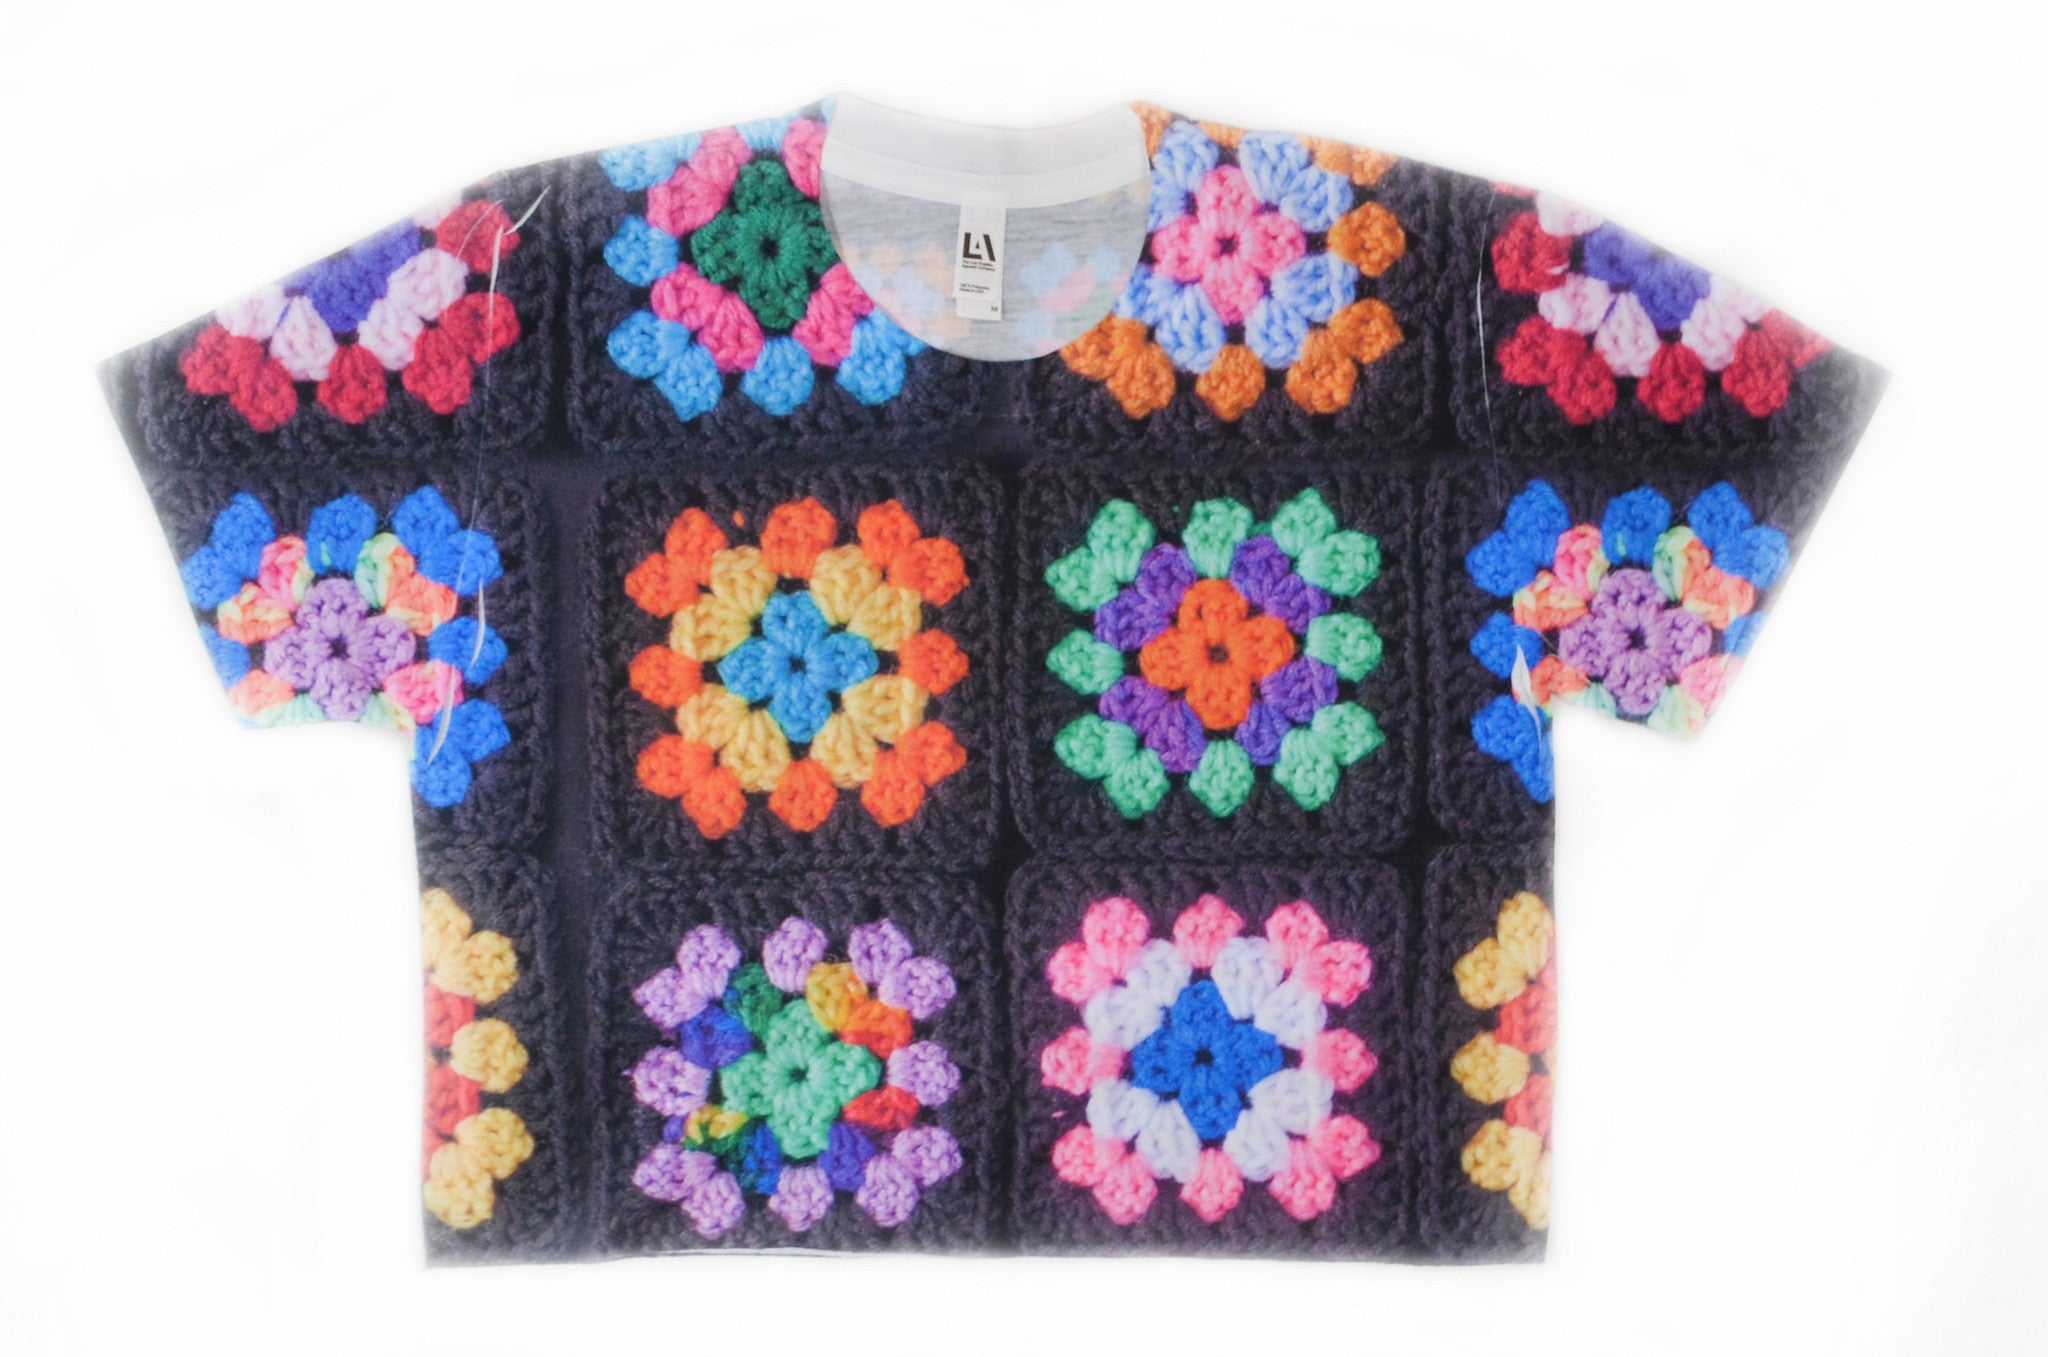 Snapdragon Brand Clothing Granny Square Crochet Print rainbow crop top cropped t-shirt in style Kaleidoscope features a vintage boho feel and a rainbow of colors. Made of comfortable polyester.